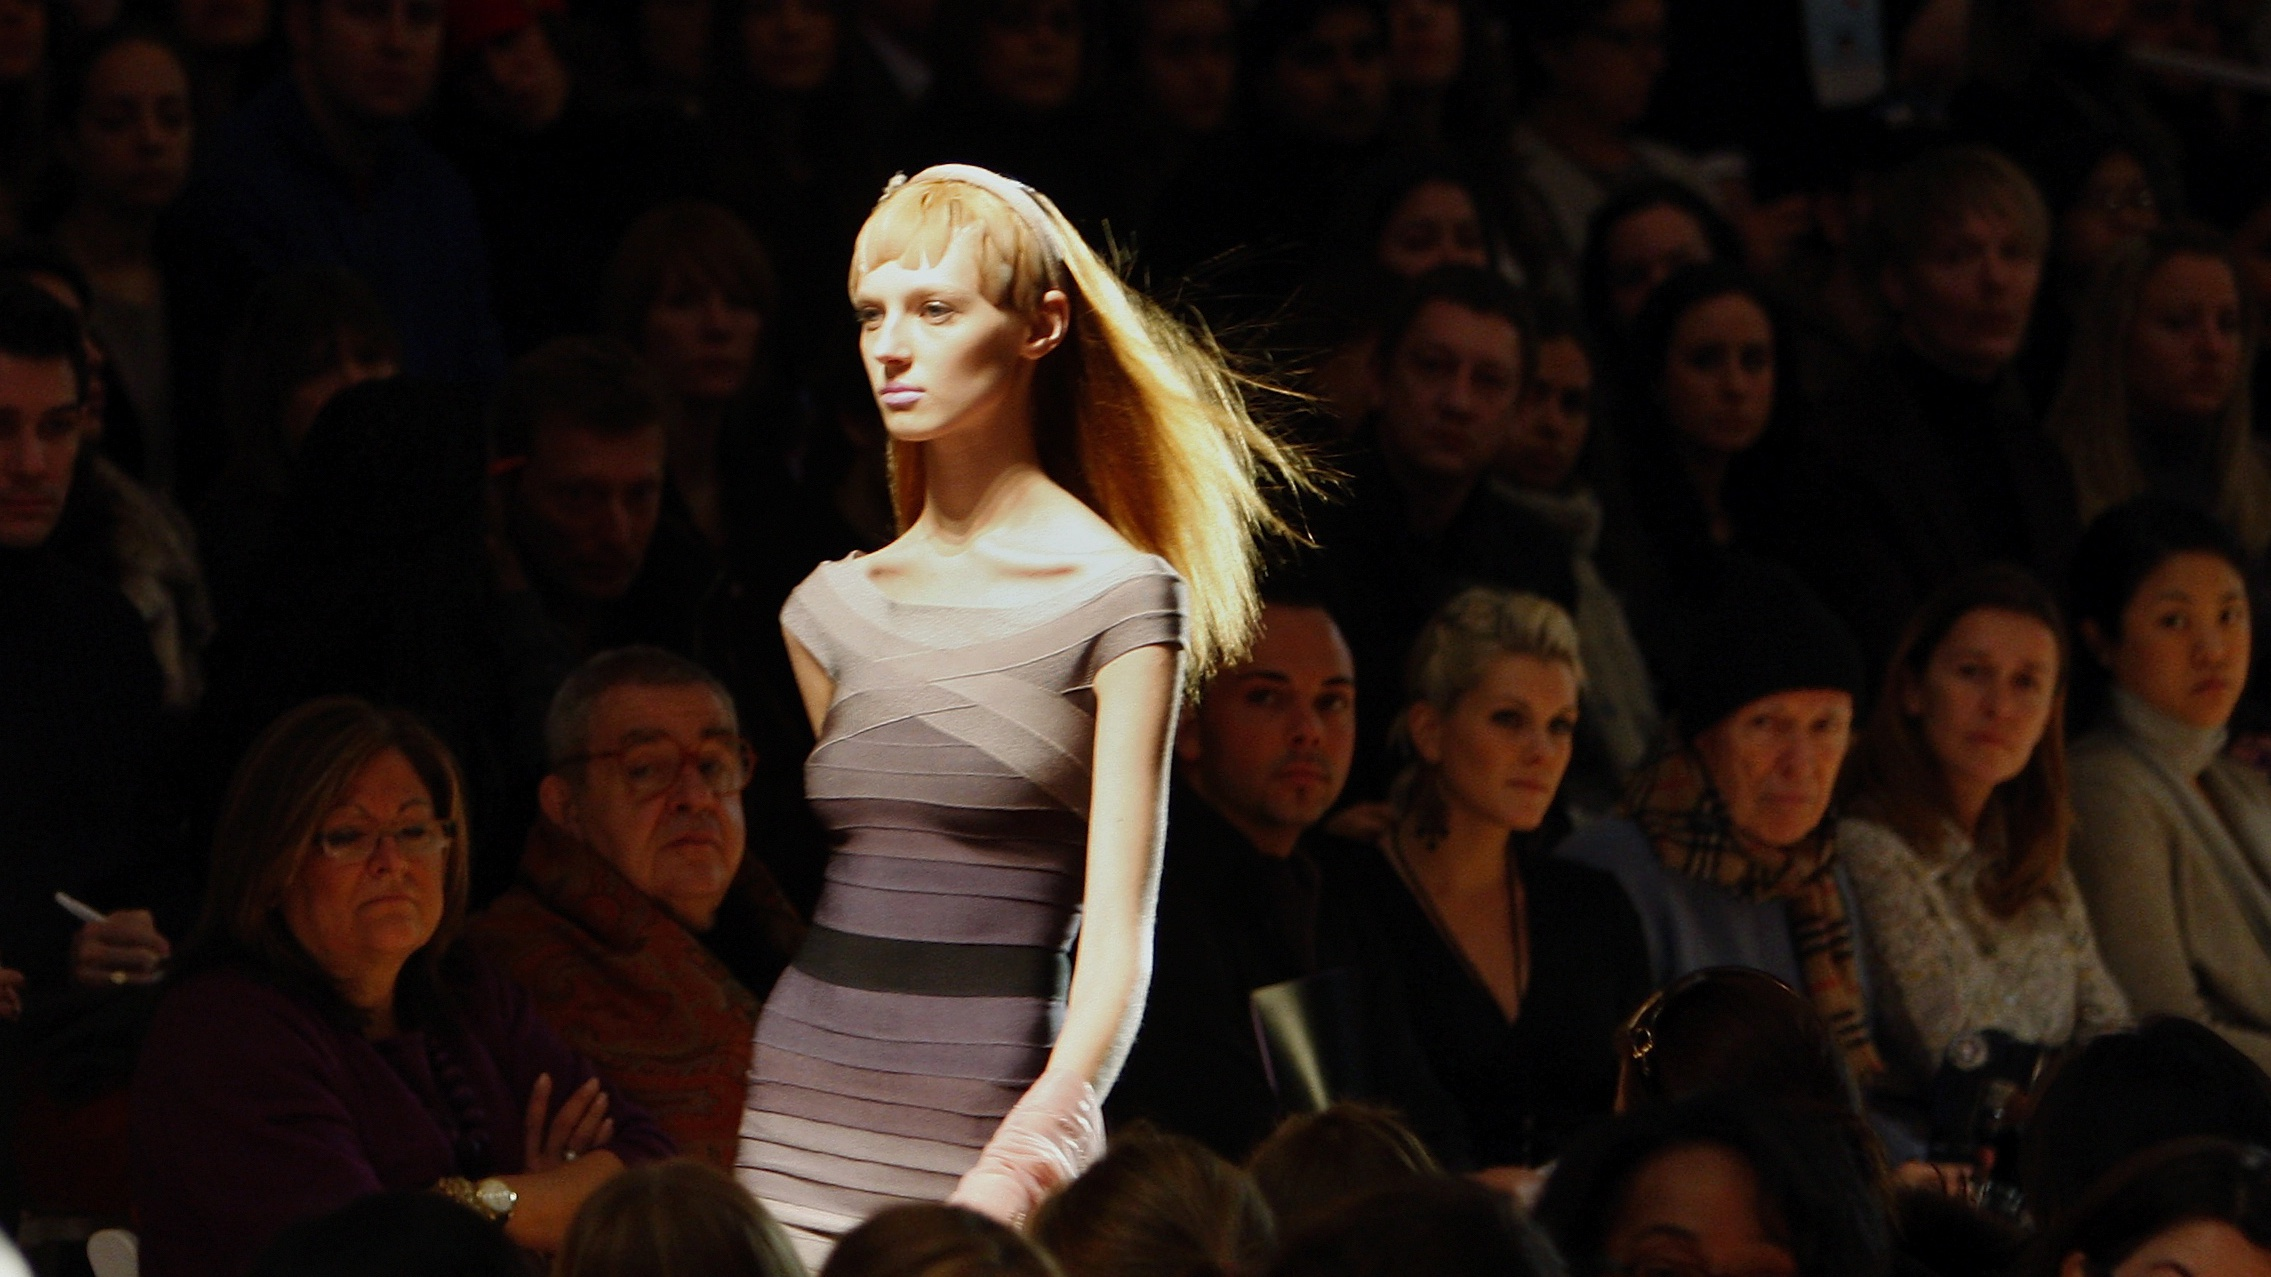 A model presents a creation from the Herve Leger 2008/2009 fall collection during New York Fashion Week February 3, 2008.